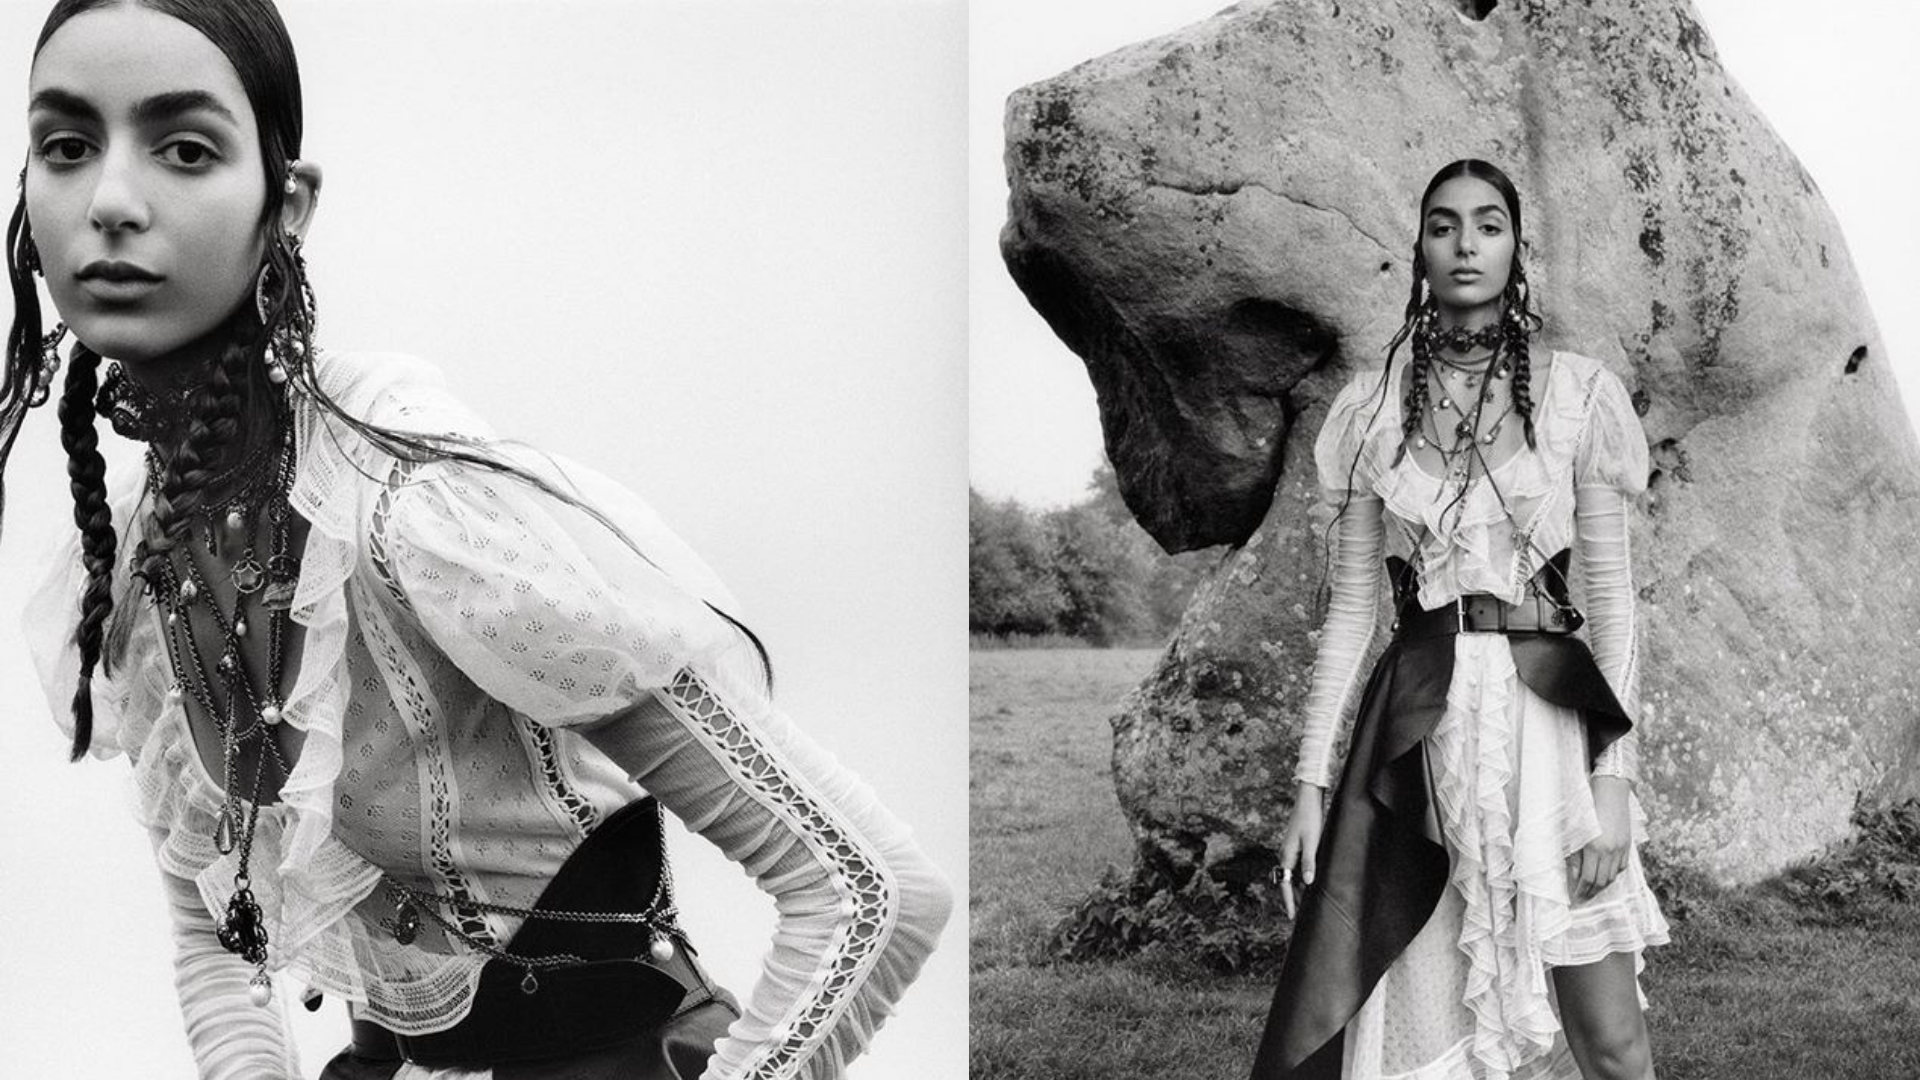 British-Moroccan Model Nora Attal Was Just Featured In An Alexander McQueen Campaign